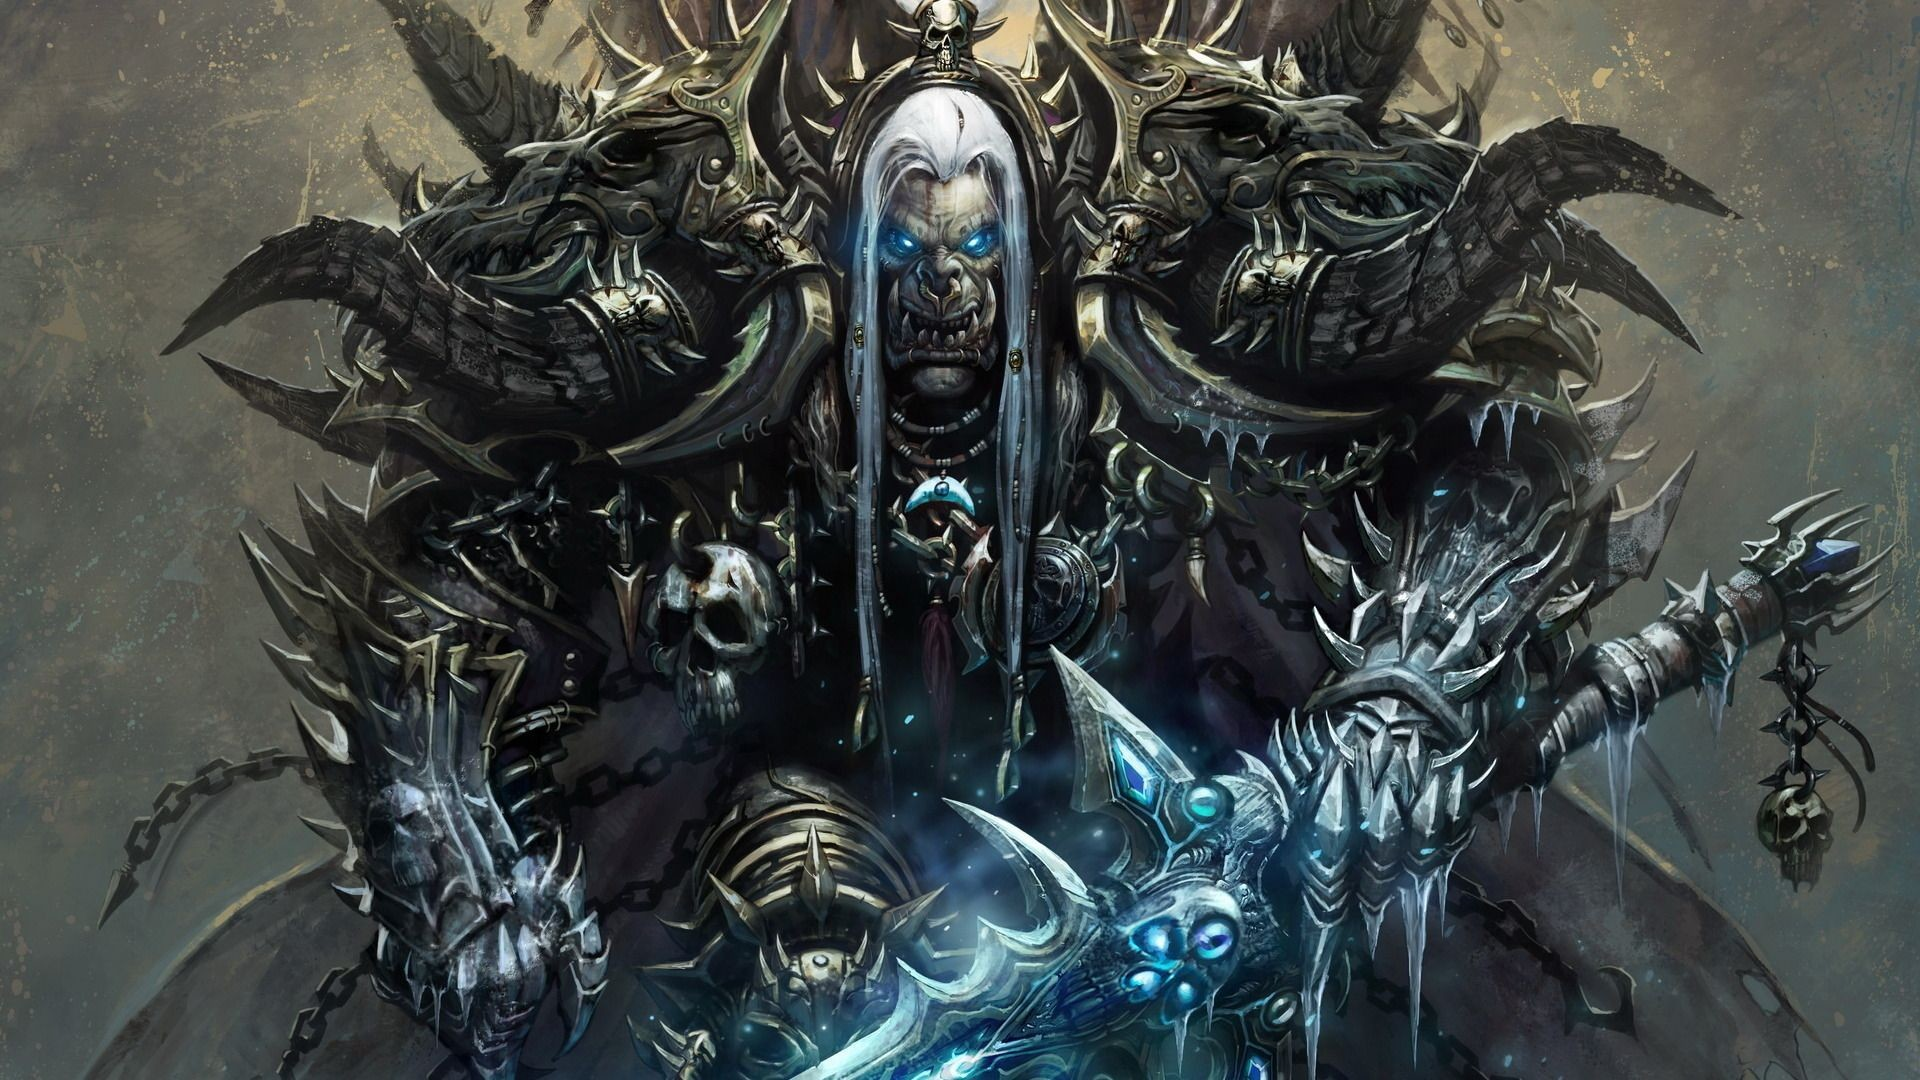 warhammer chaos wallpapers picture with high resolution desktop wallpaper  on games category similar with chaos eldar imperial guard space marine tau